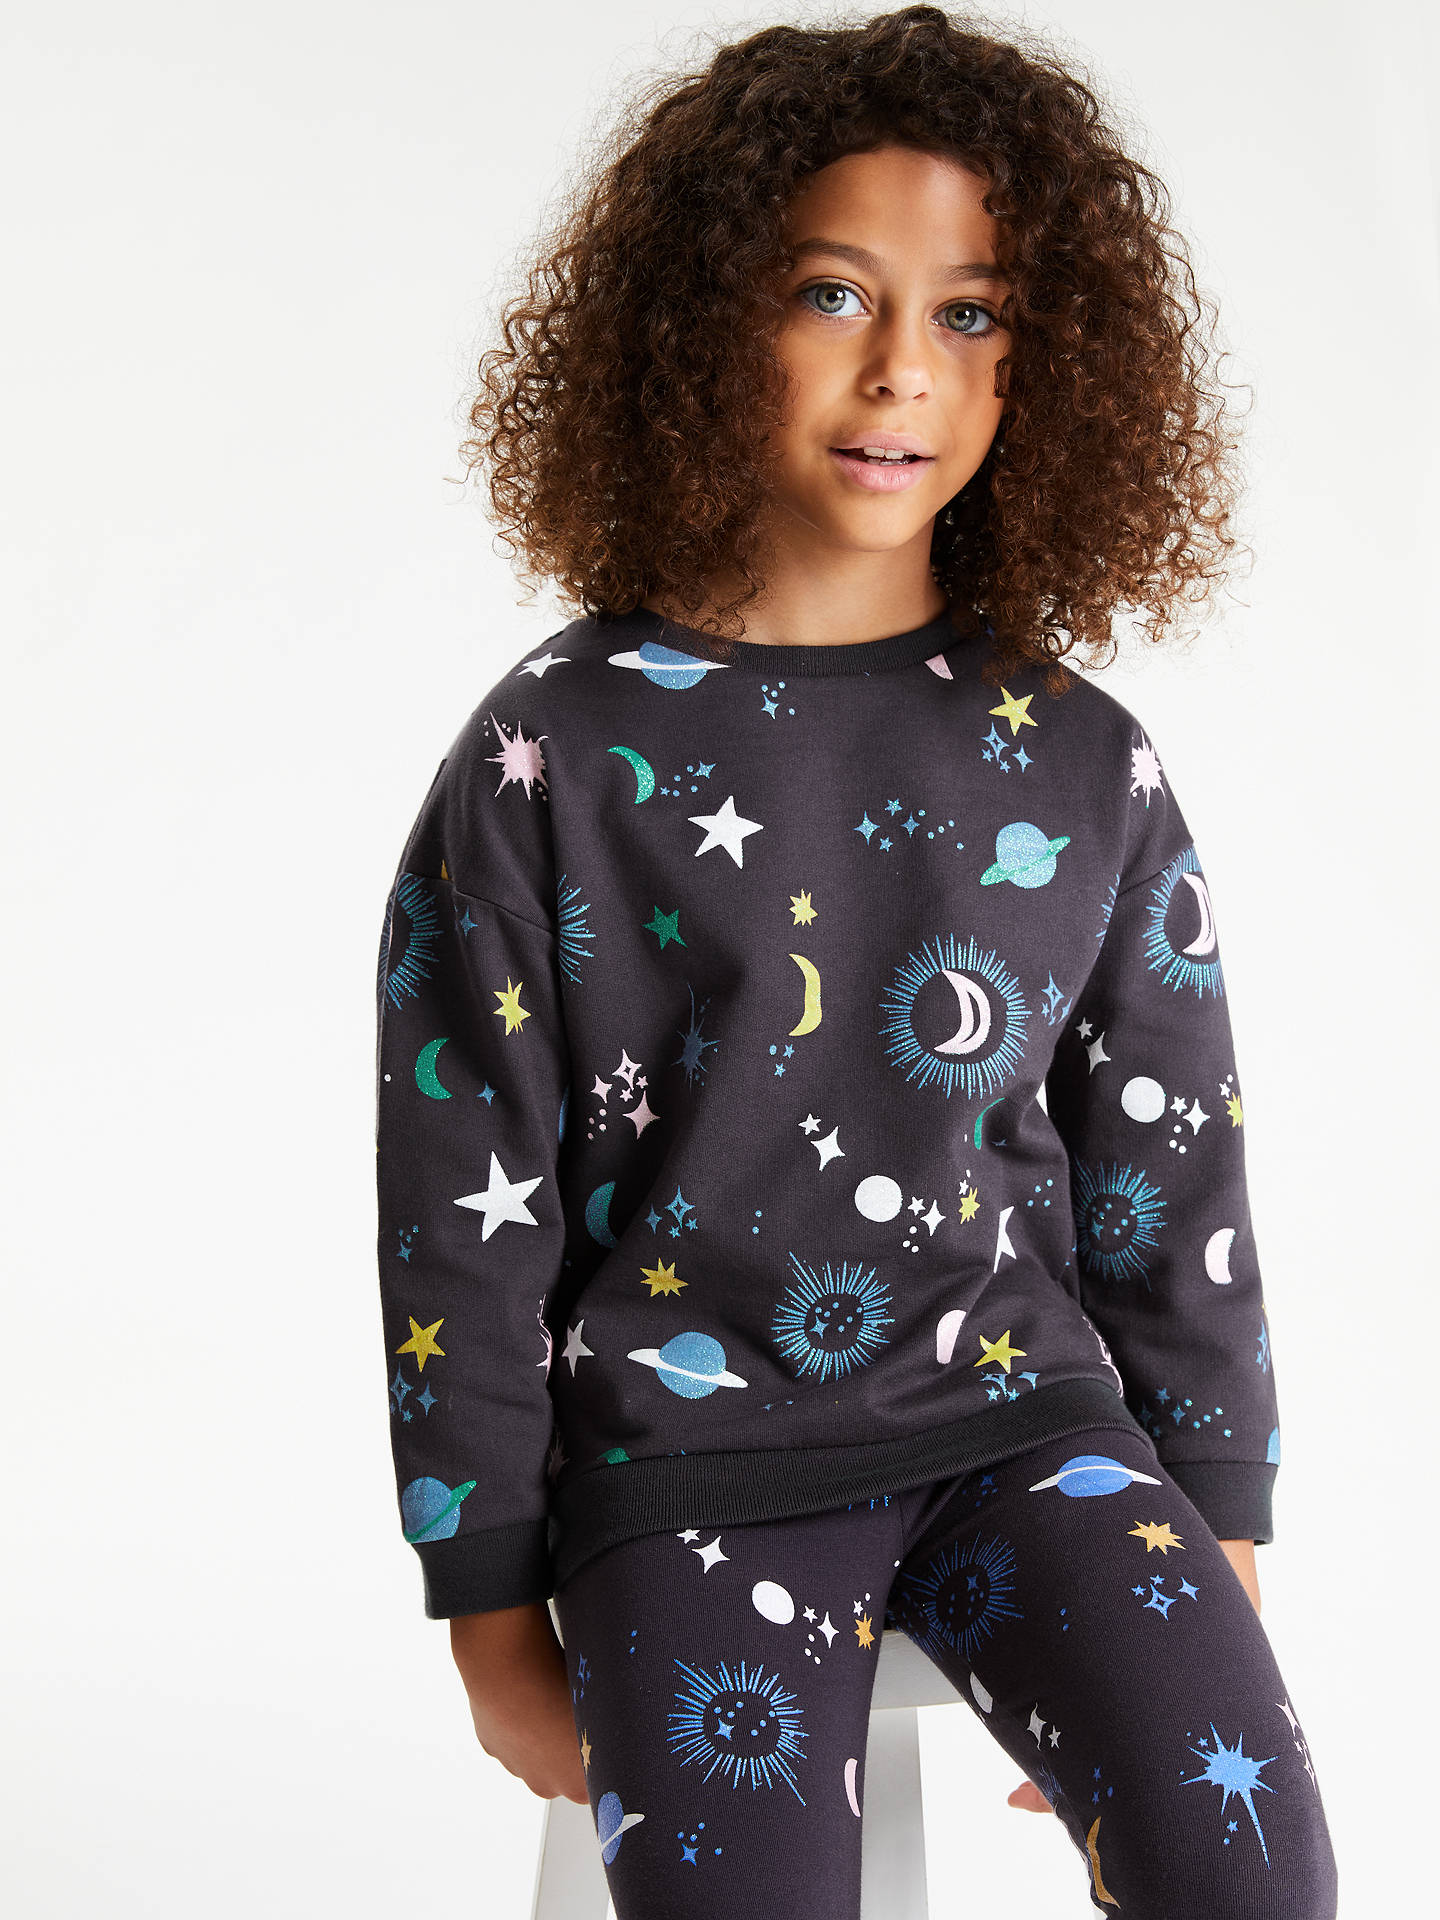 BuyJohn Lewis & Partners Girls' Star and Moon Sweatshirt, Charcoal, 2 years Online at johnlewis.com